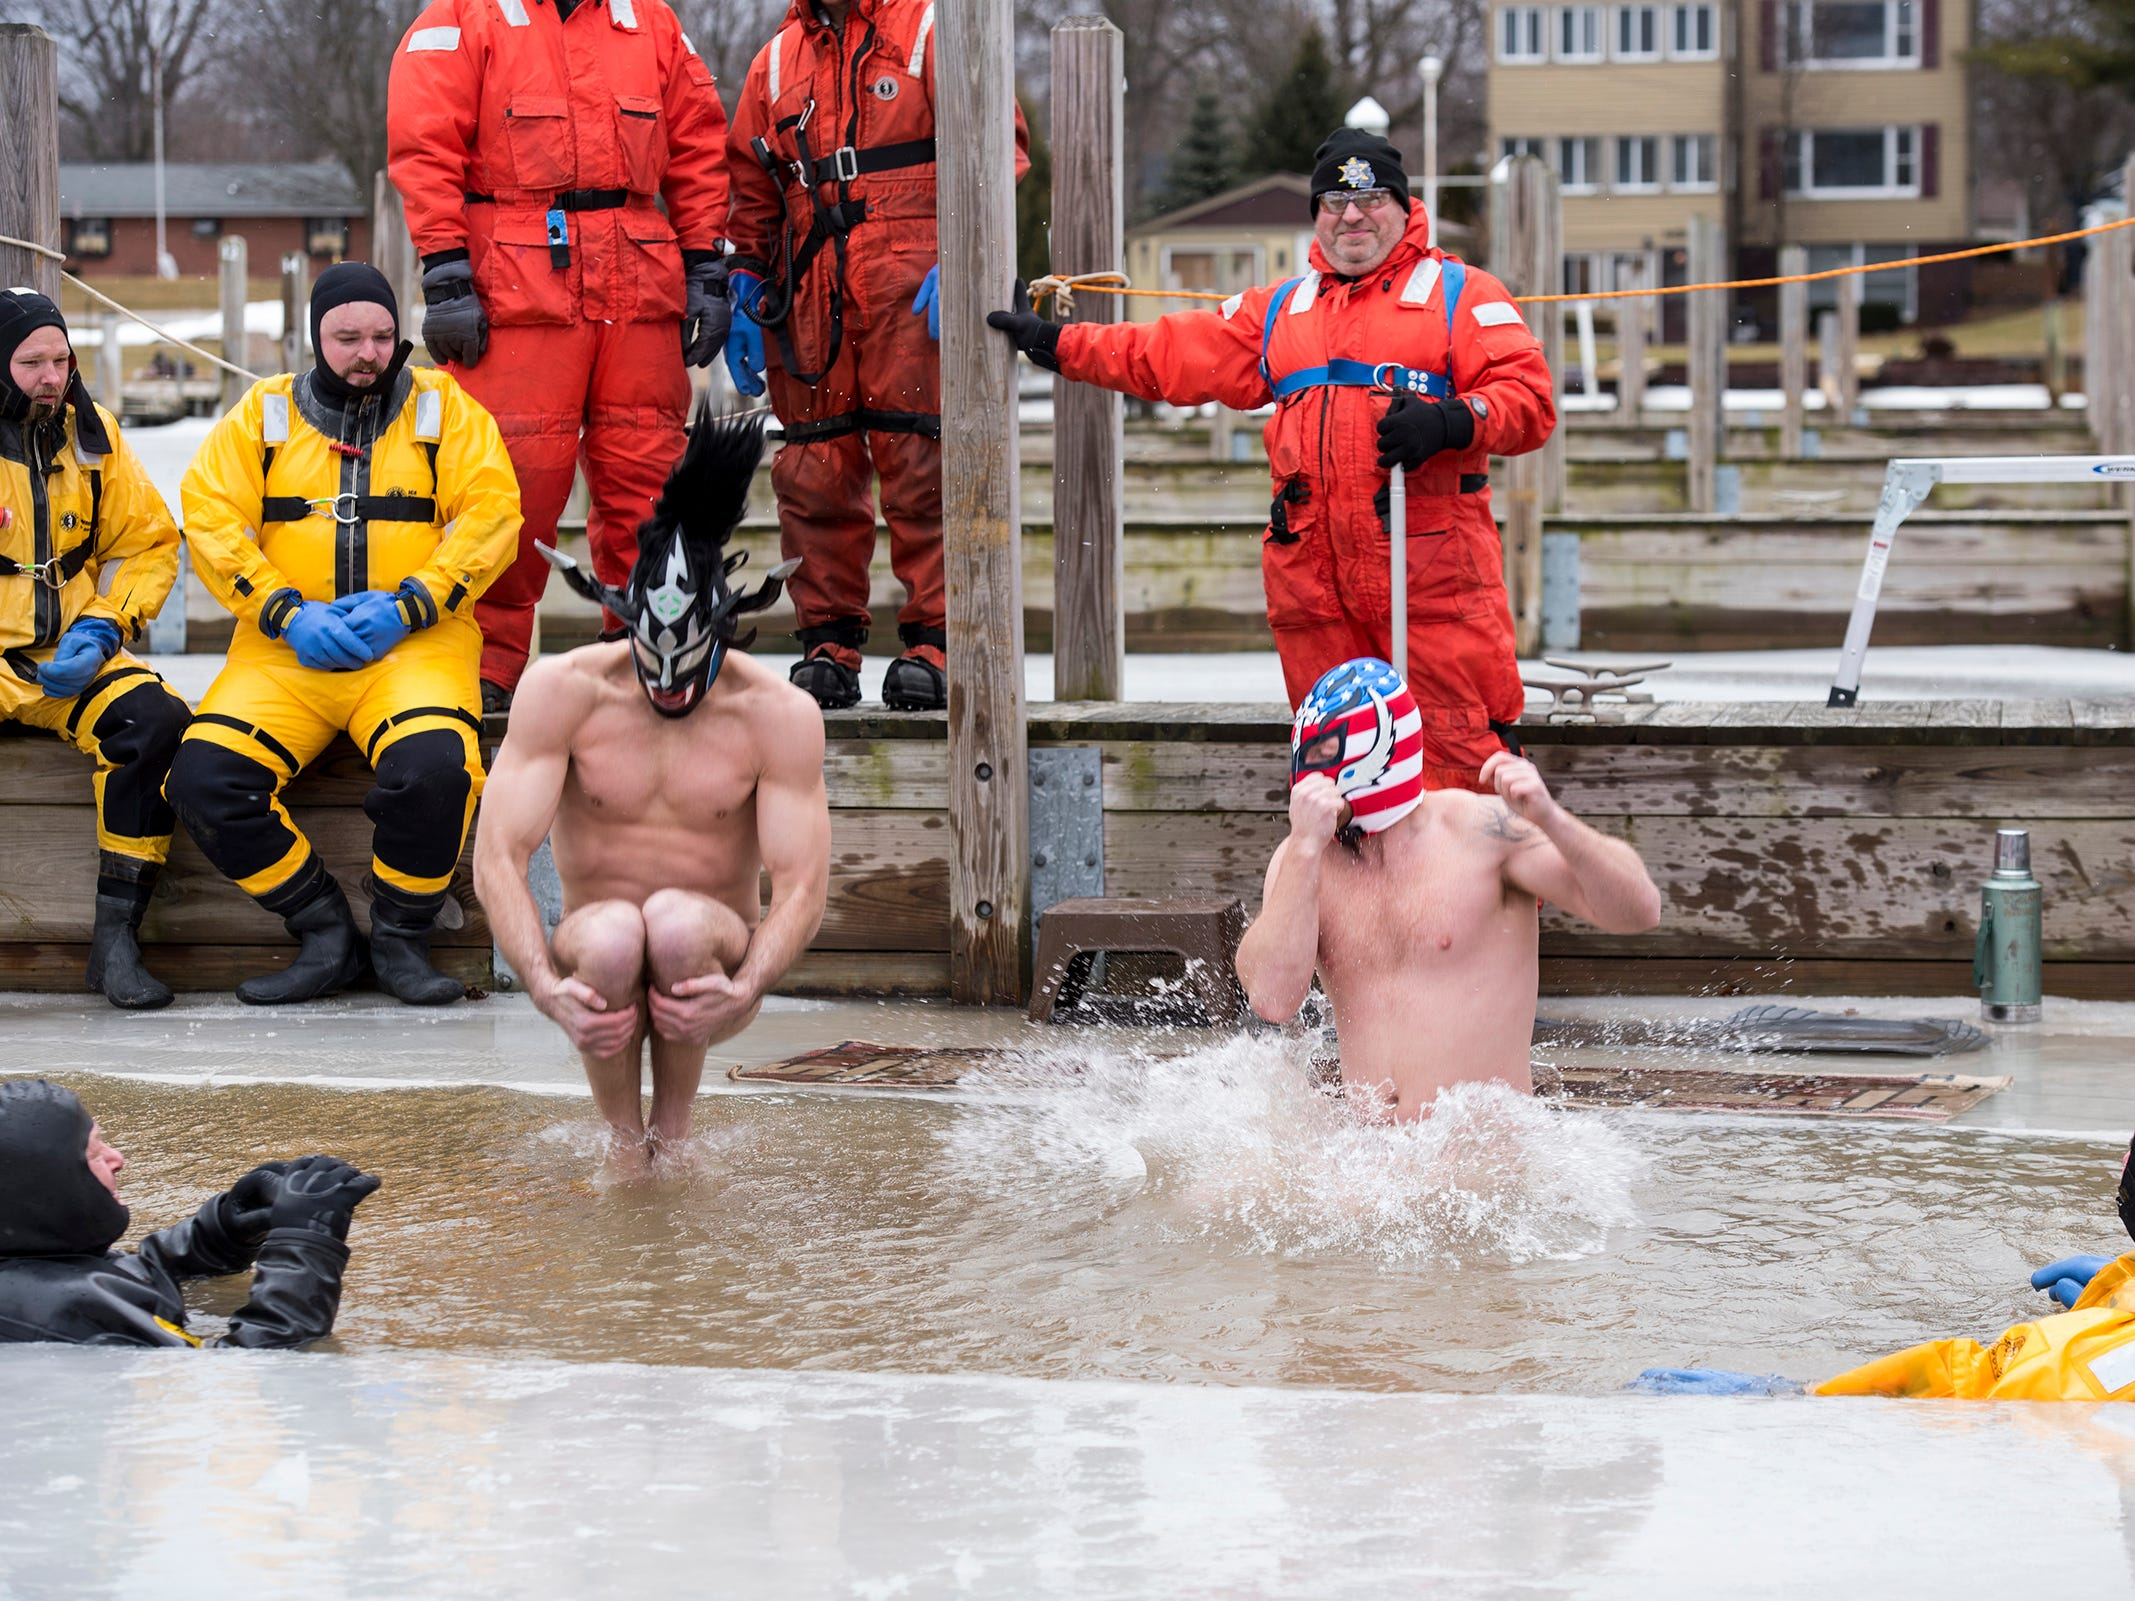 Sergio Hernandez, left, and Ryan Teeple plunge through a hole in the ice into the water in the St. Clair Boat Harbor Sunday, Feb. 24, 2019 during the annual St. Clair Polar Plunge.